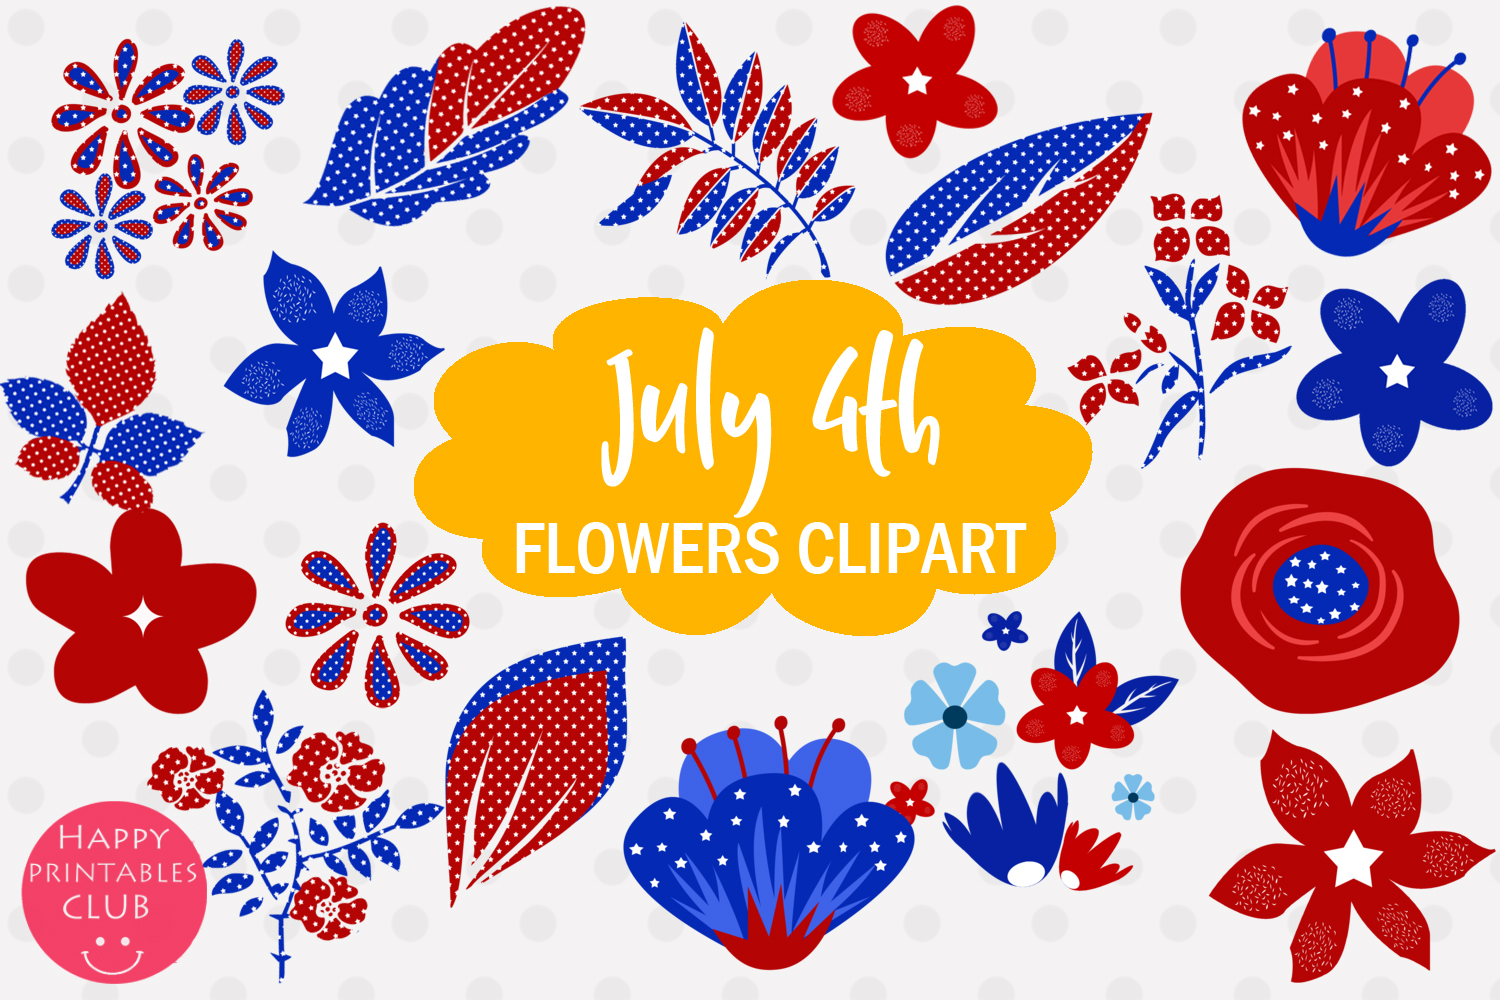 4th July Flowers Clipart.